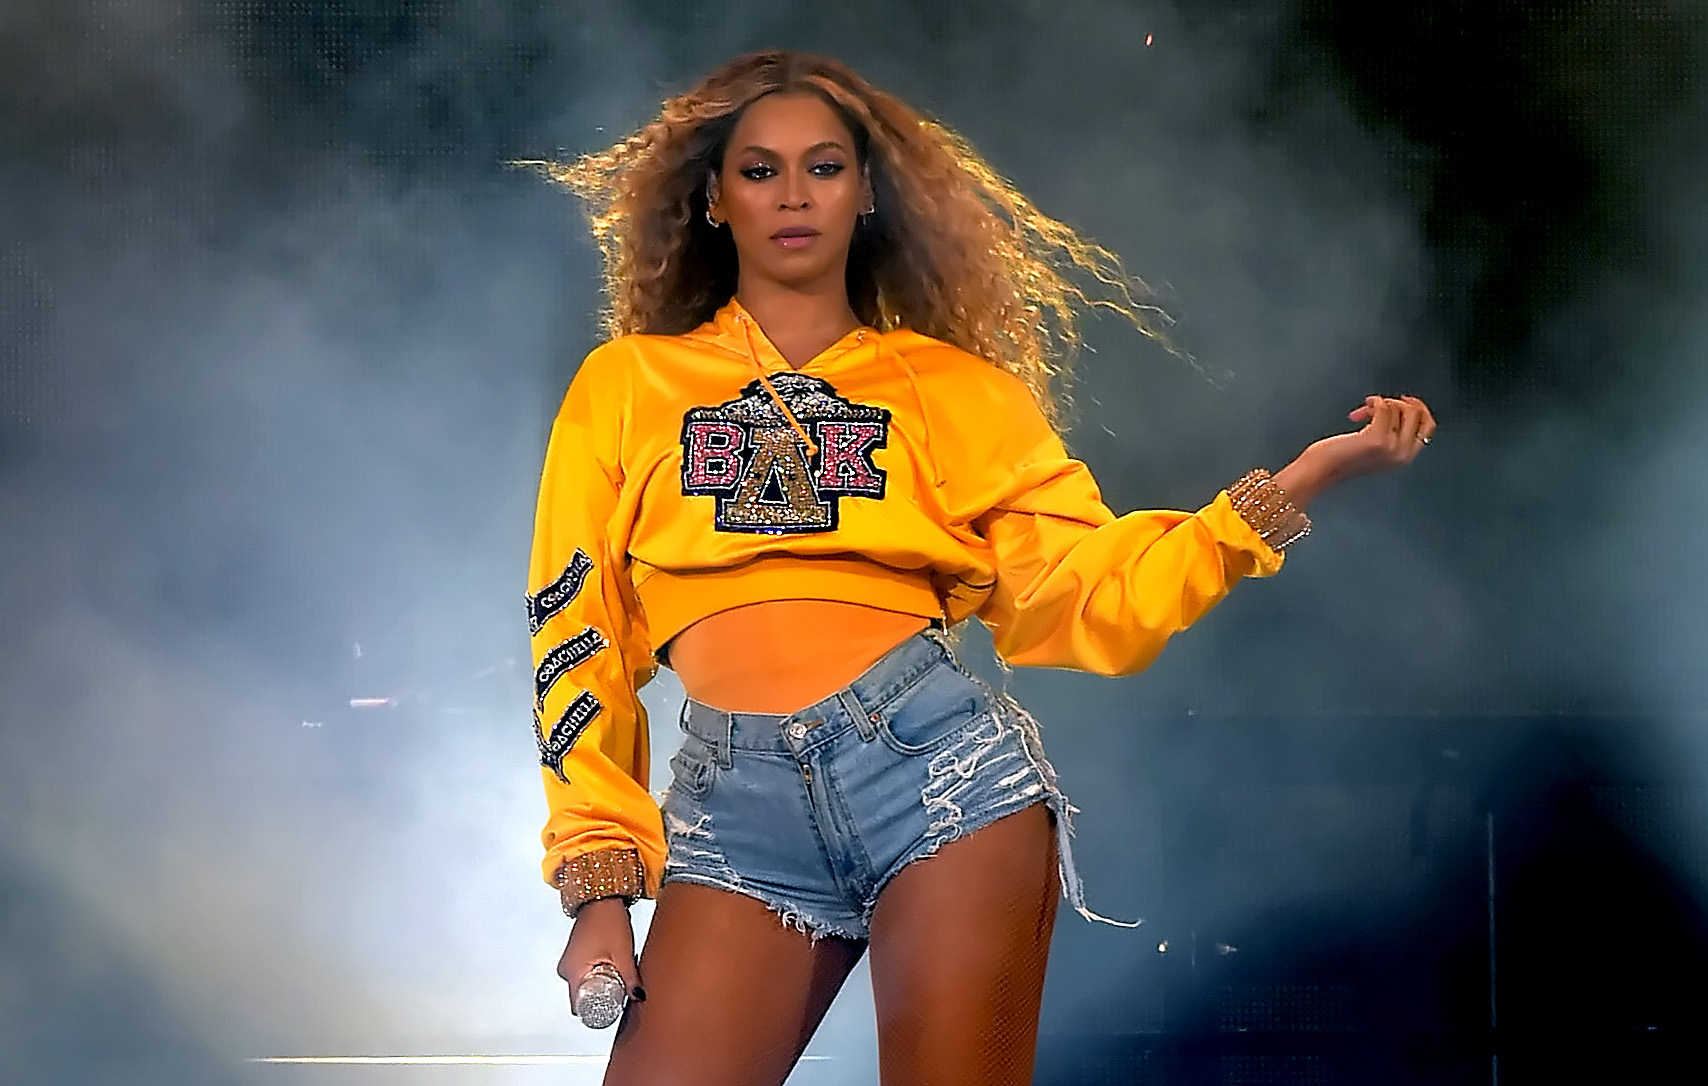 564705ed34d He told Refinery 29 that Beyoncé was keen to look